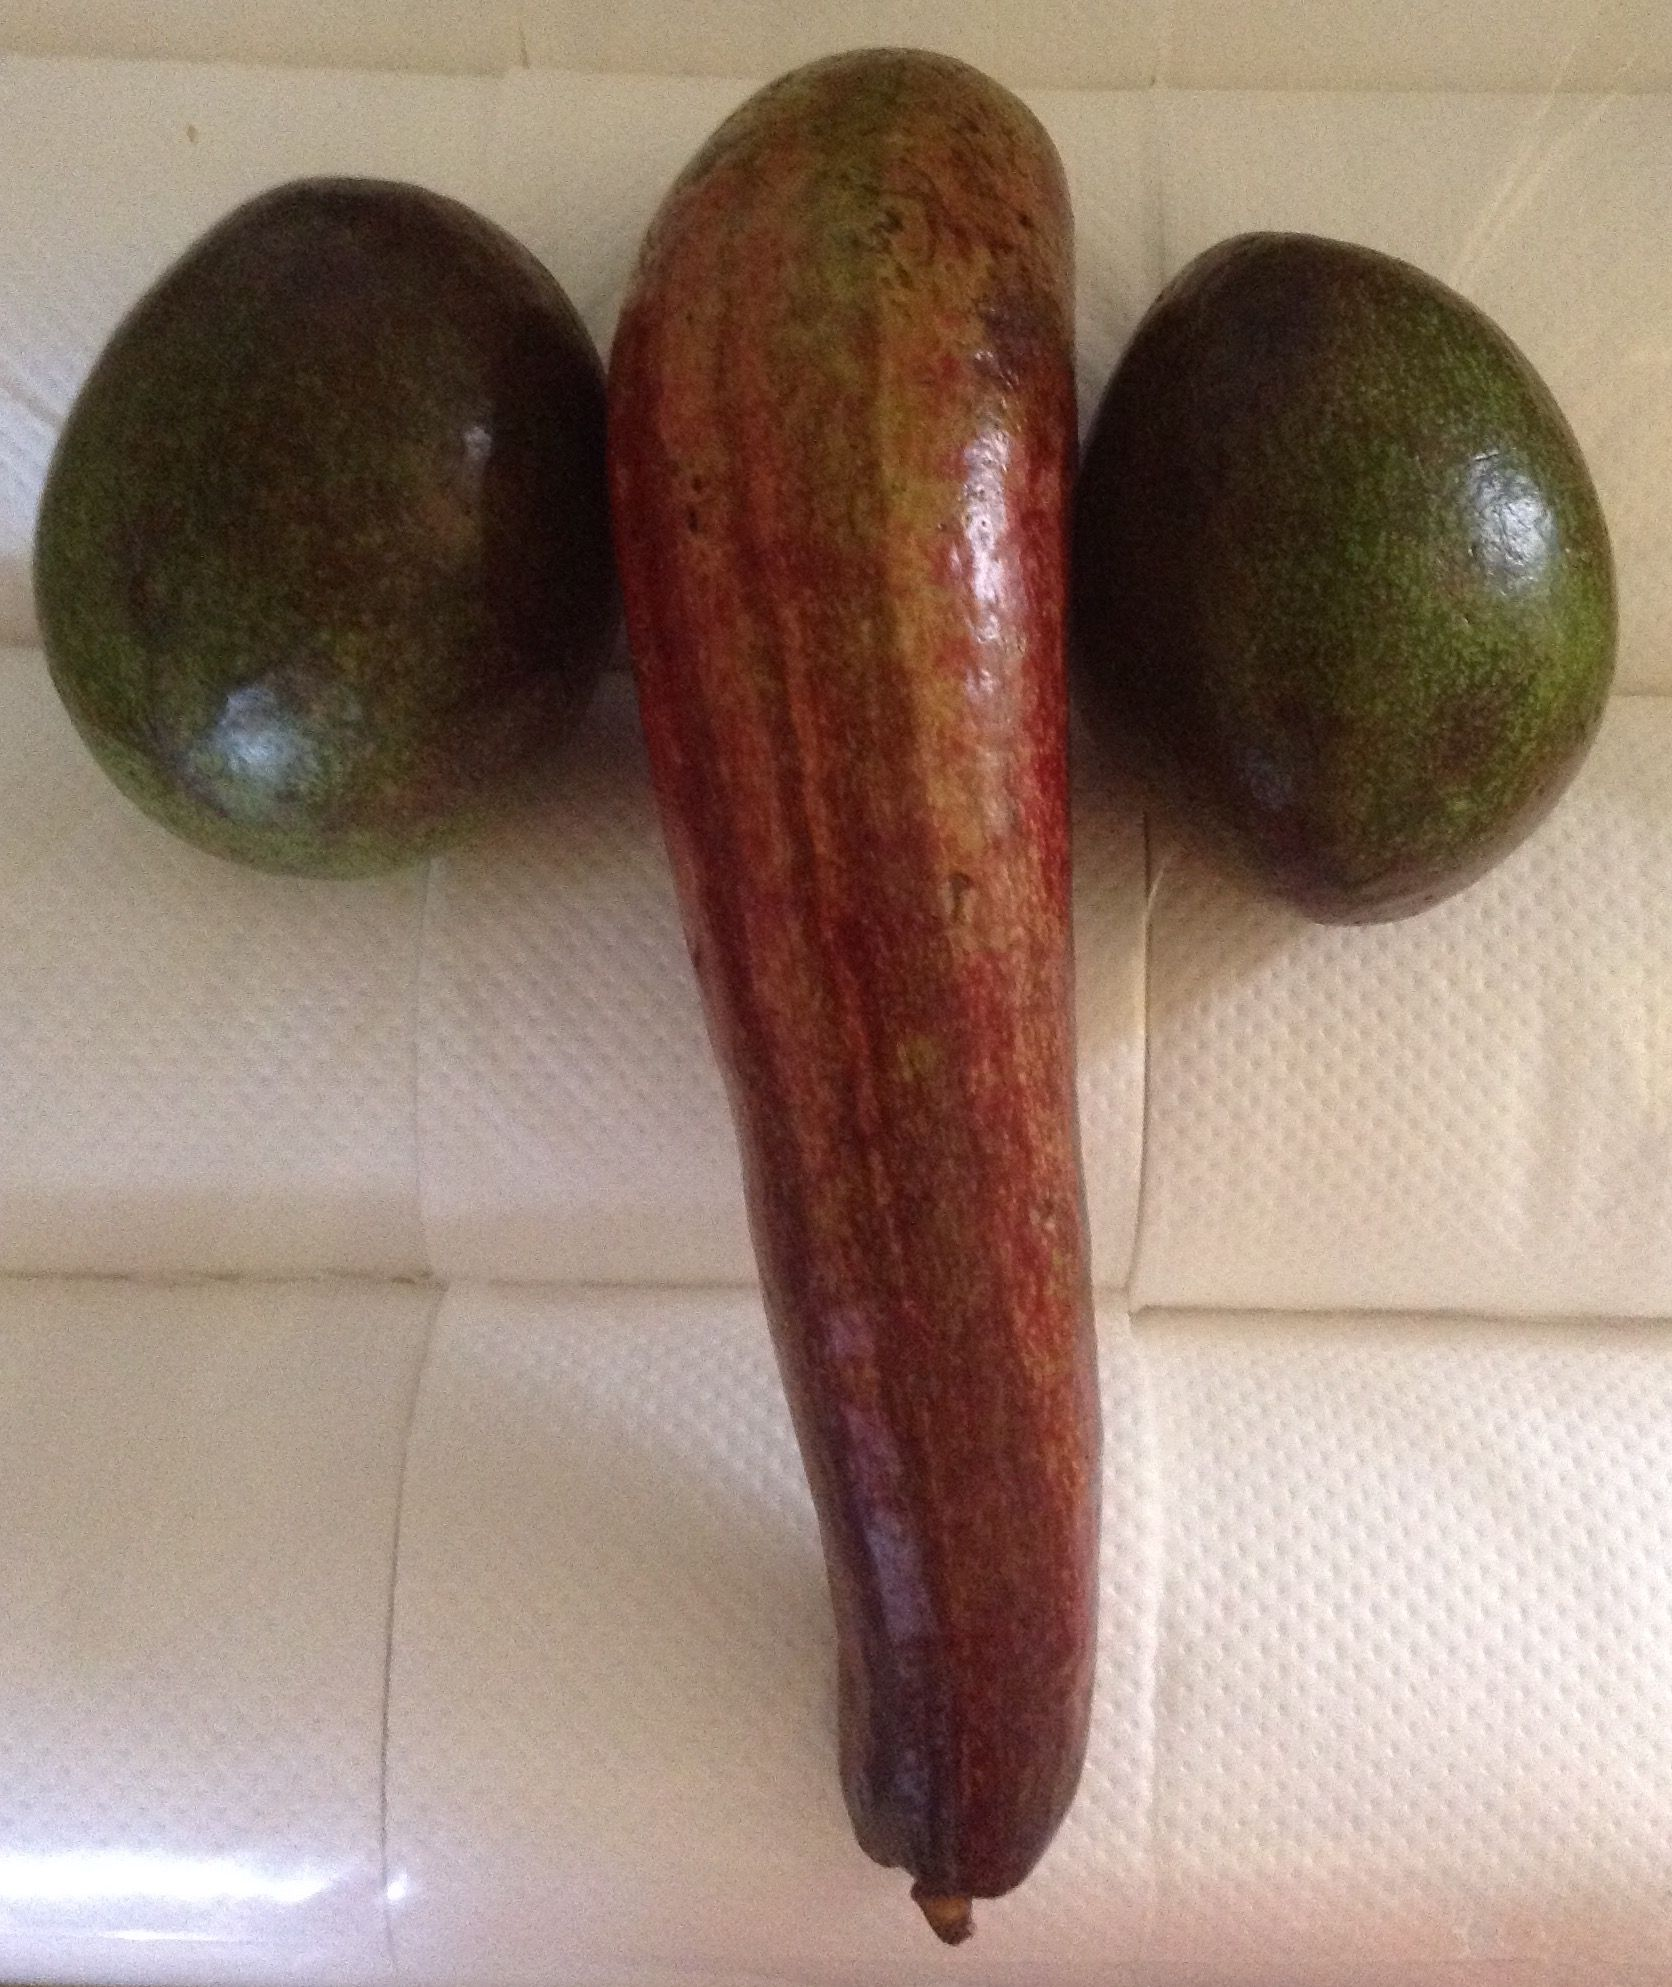 Avocados on our 40th wedding anniversary.